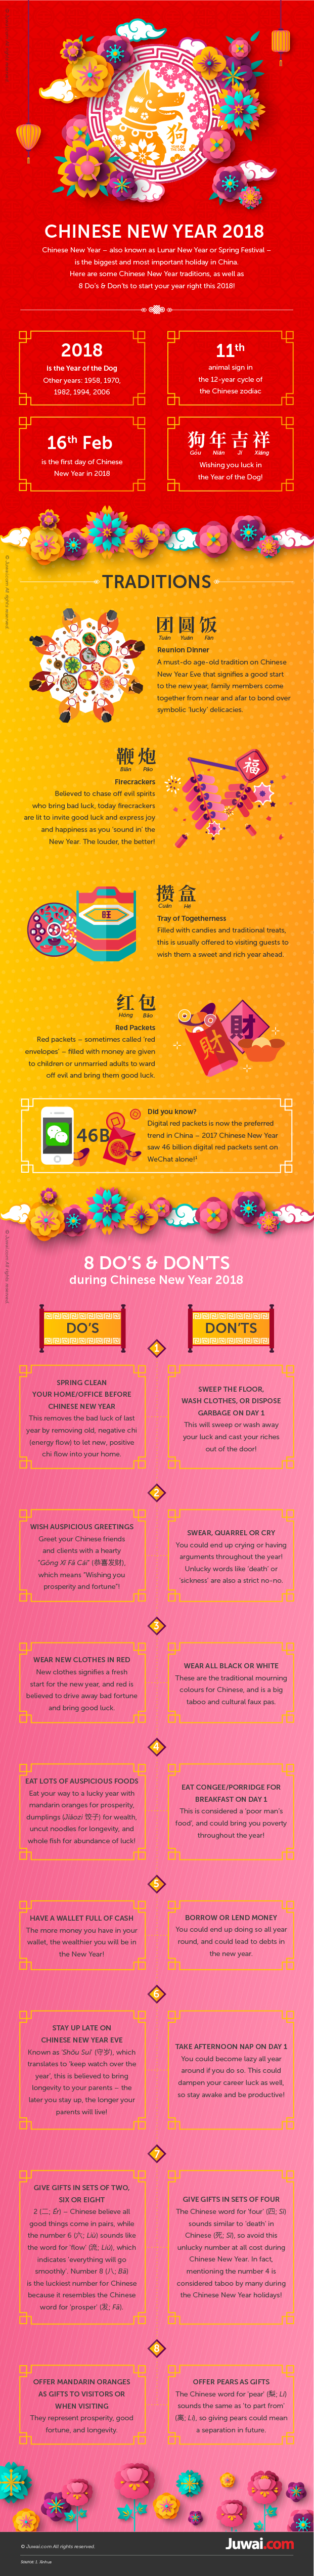 8 Do's & Don'ts during Chinese New Year 2018